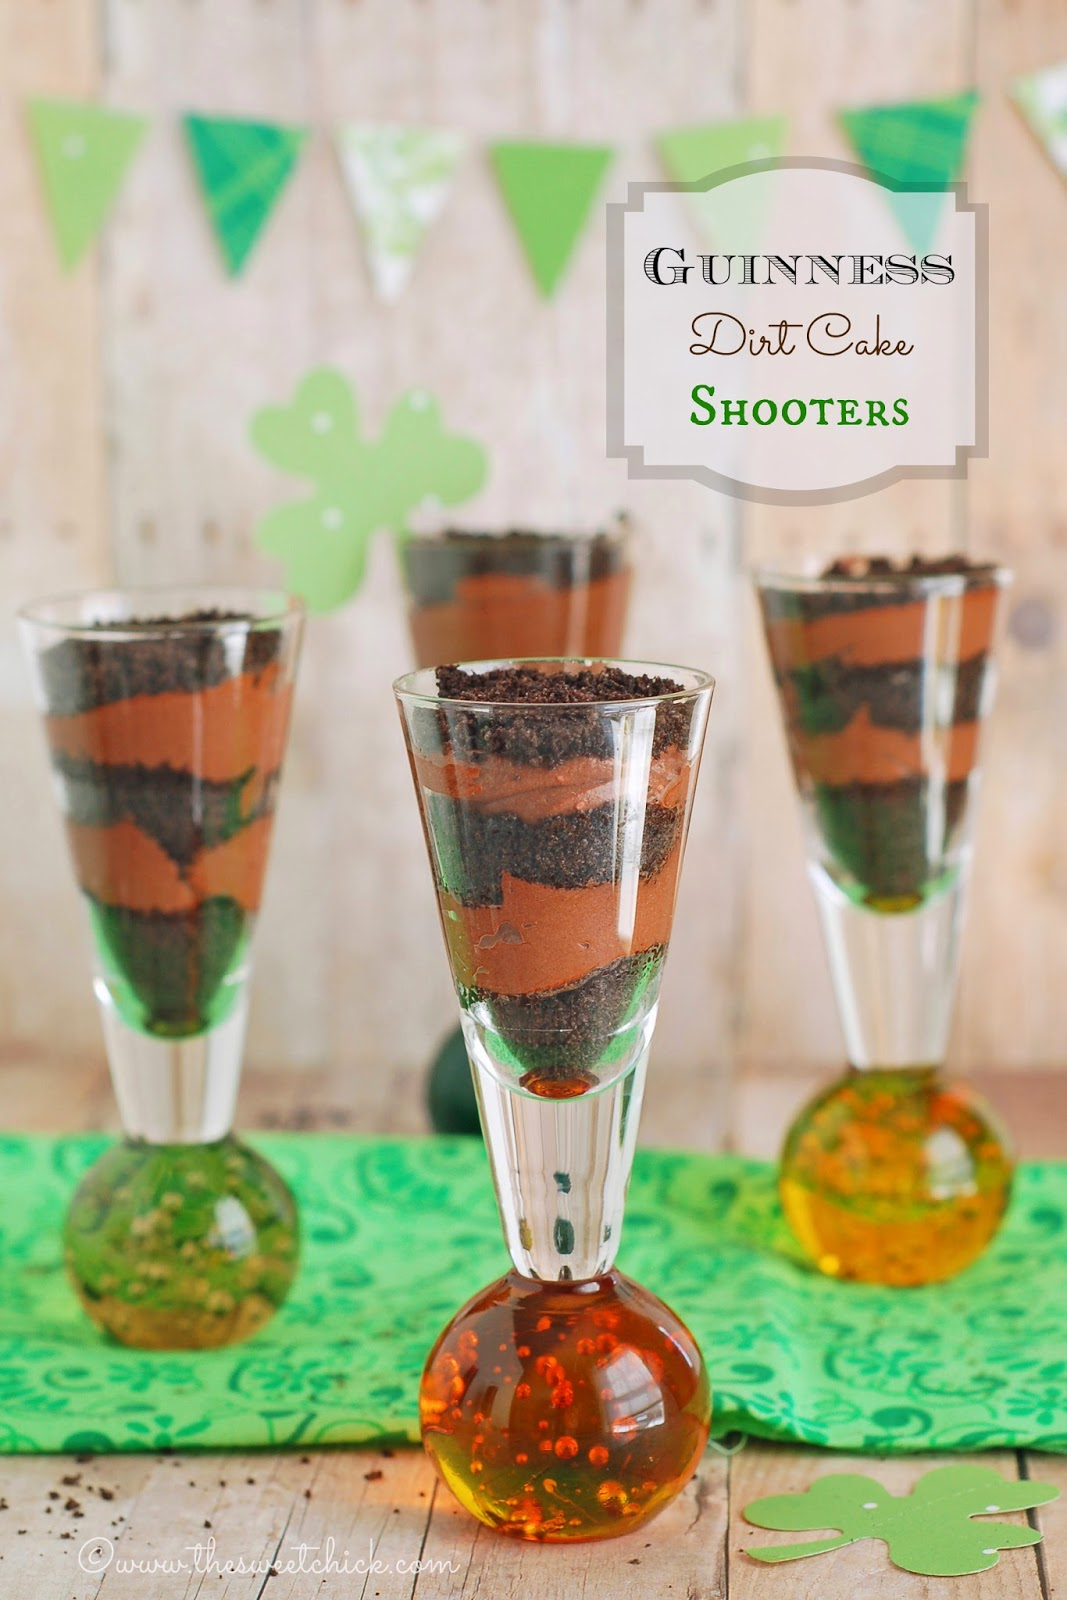 Guinness Dirt Cake Shooters by The Sweet Chick